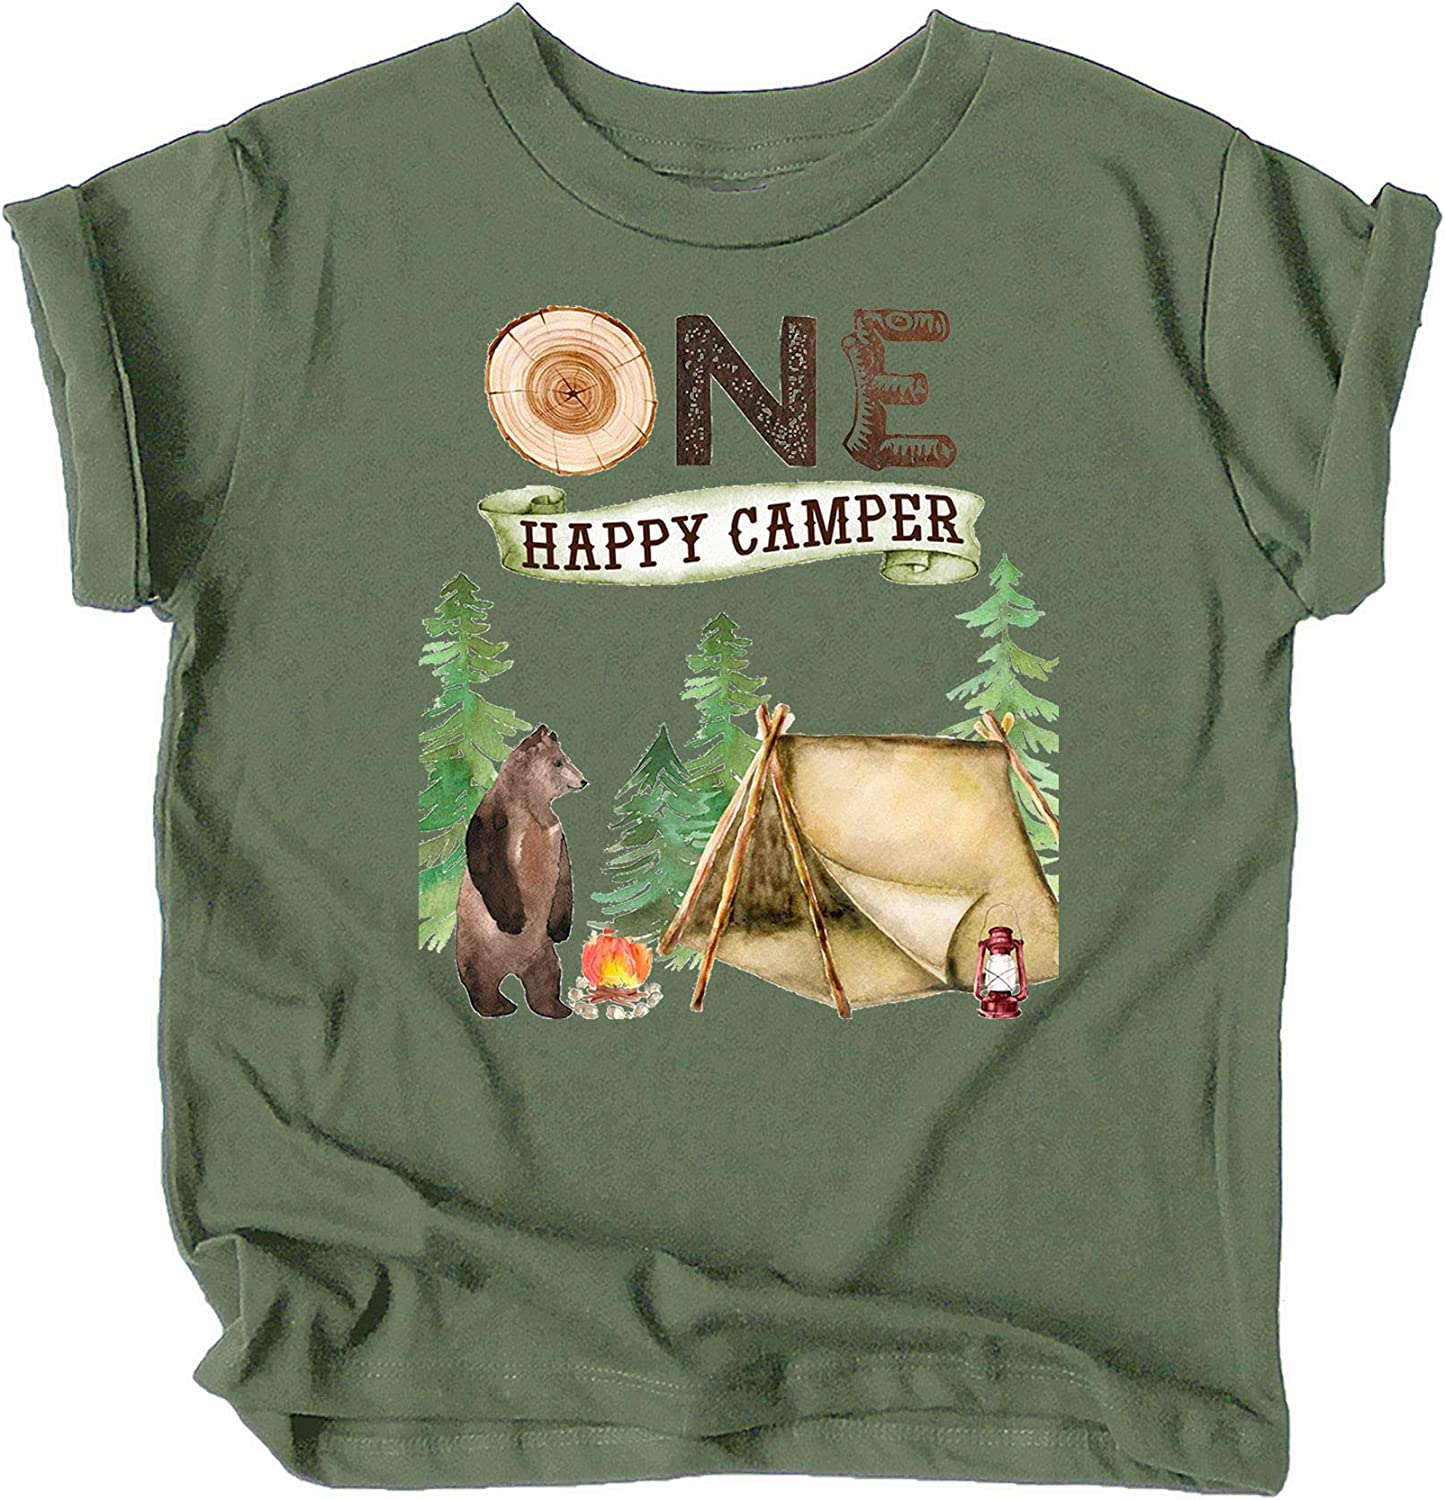 One Happy Camper 1st Birthday Camping Outdoor Themed T-Shirts and Raglans for Girls and Boys